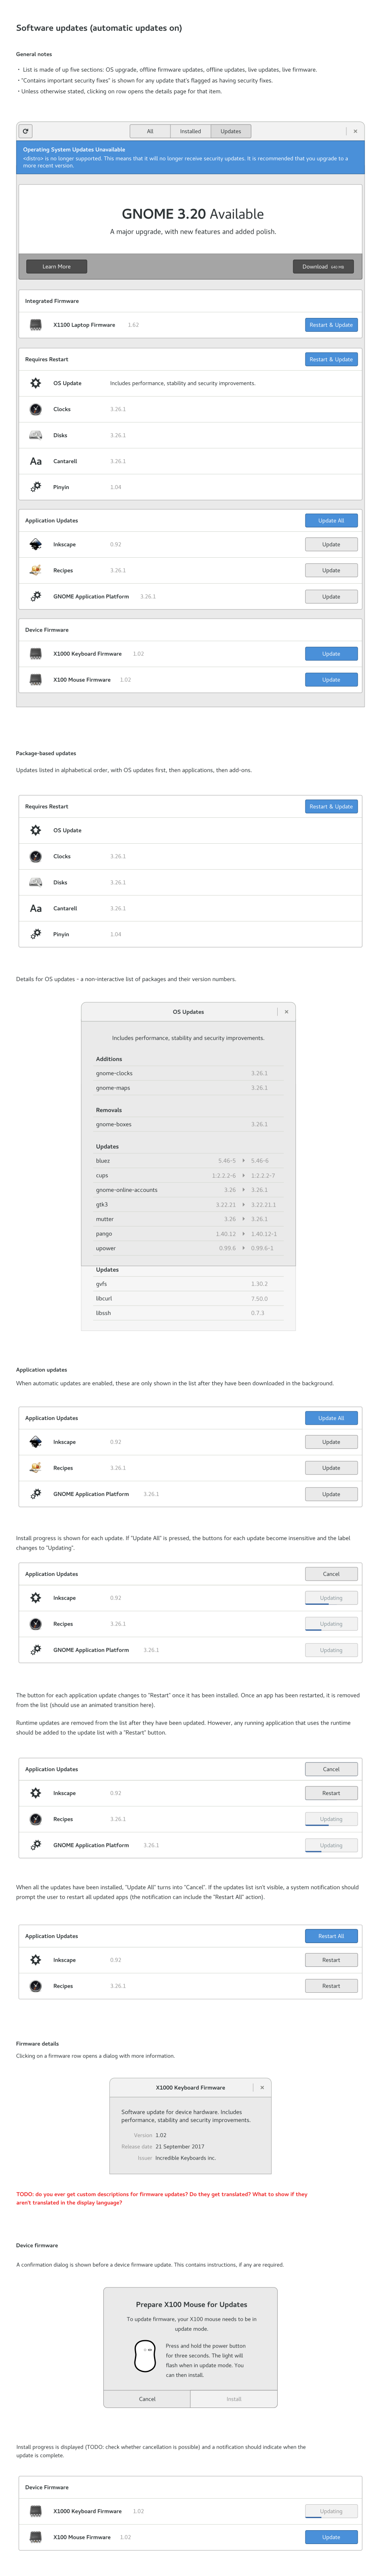 https://raw.githubusercontent.com/gnome-design-team/gnome-mockups-software/master/wireframes/updates-auto-on.png